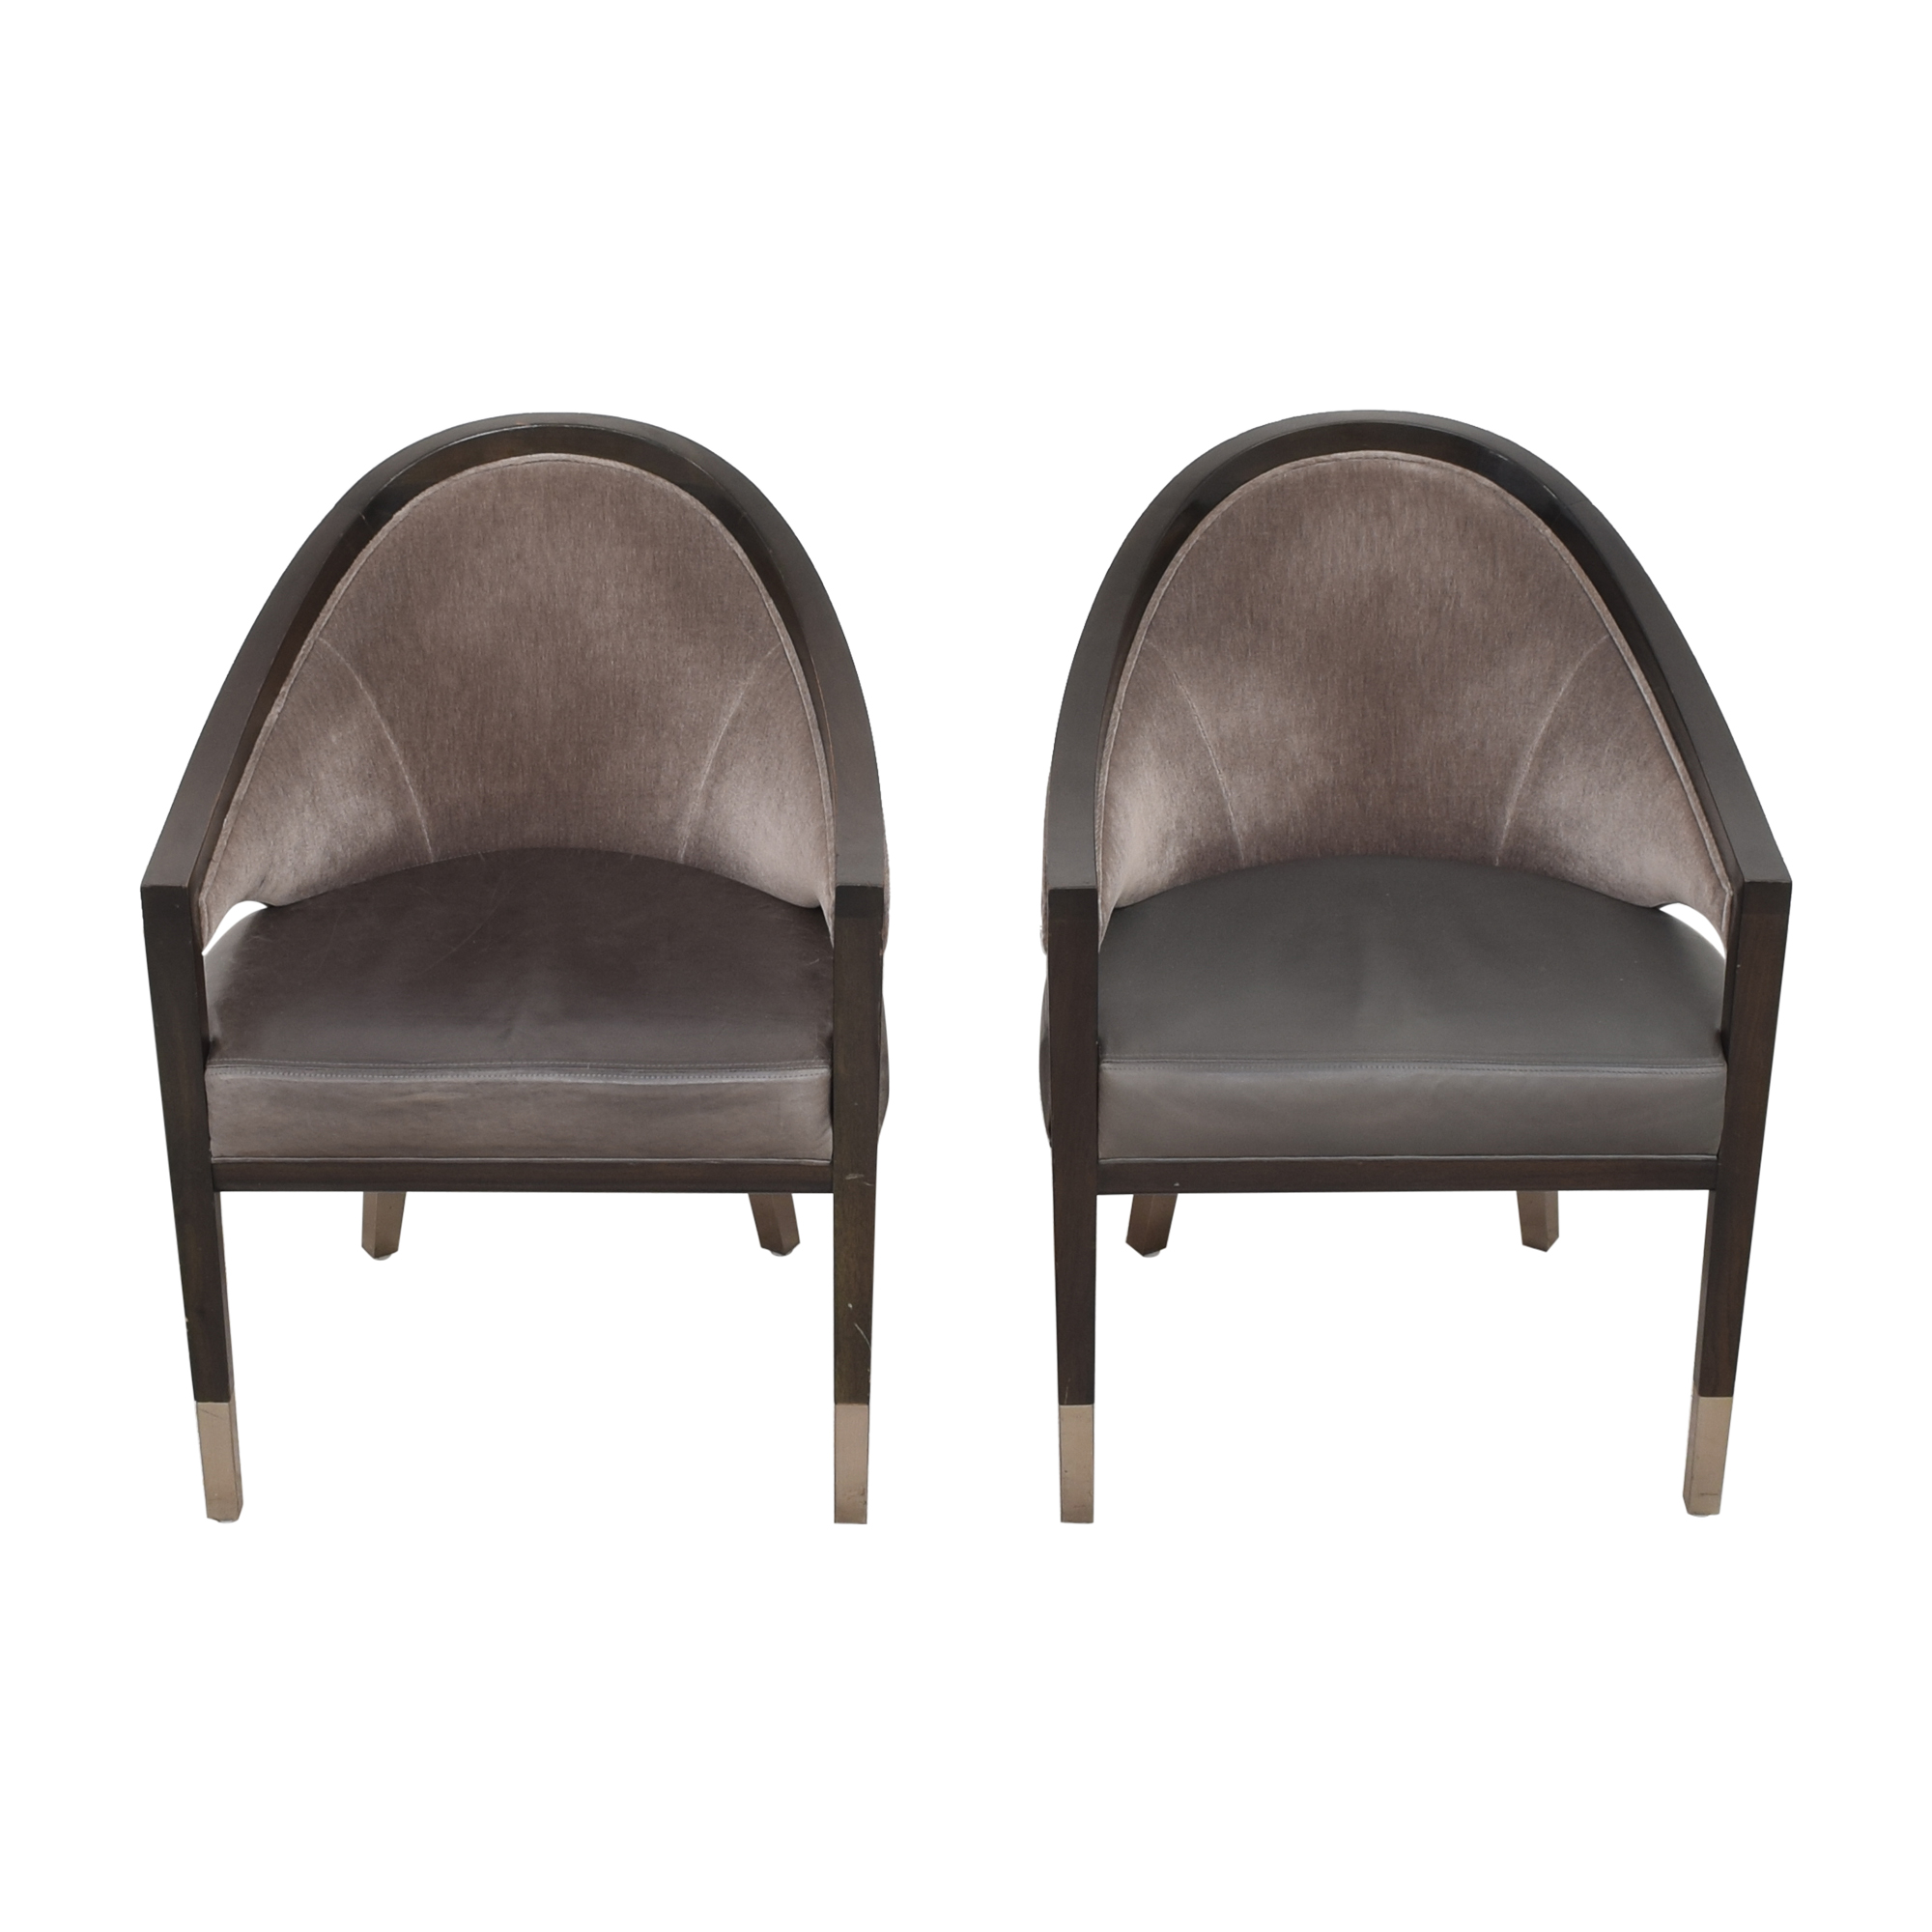 Allied Works Eleven Madison Park Dining Room Chairs / Chairs